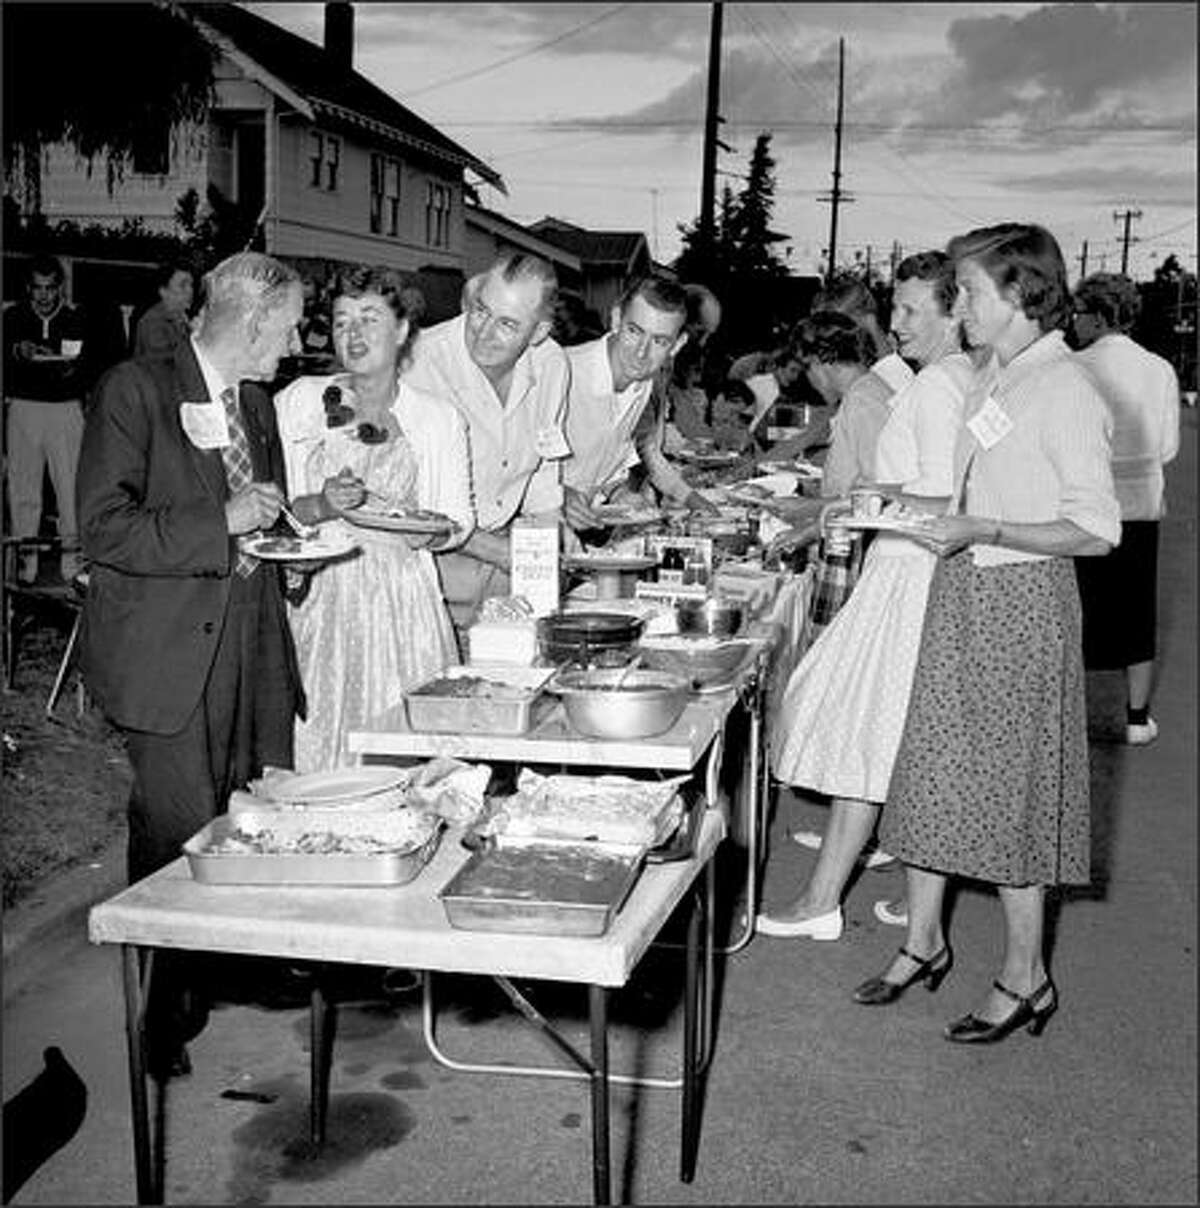 A neighborhood street party in August 1959.